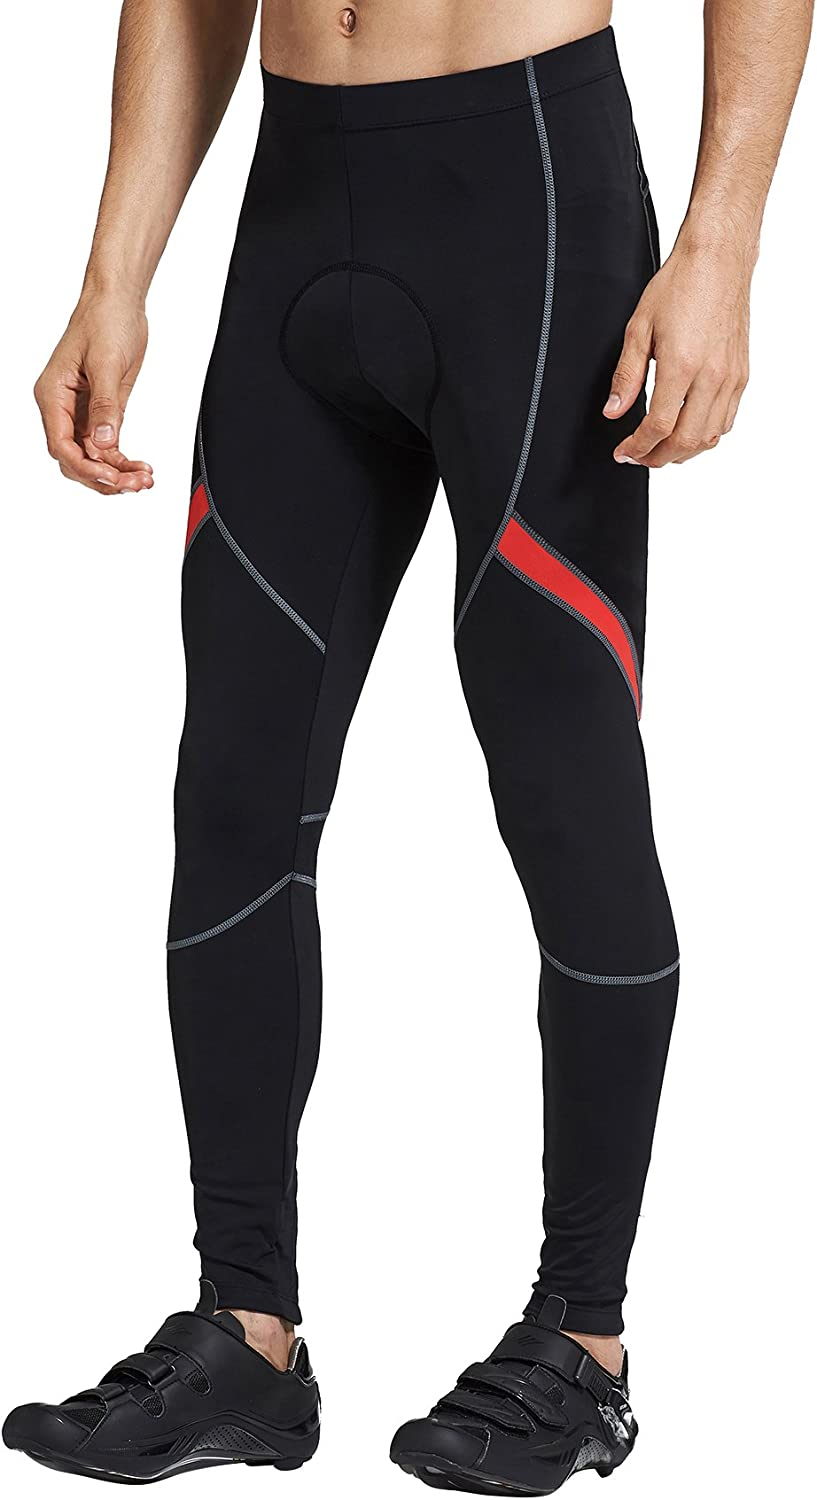 Santic Mens Cycling Bike Pants 4D Padded Long Bicycle Compression Tights Breathable Trousers